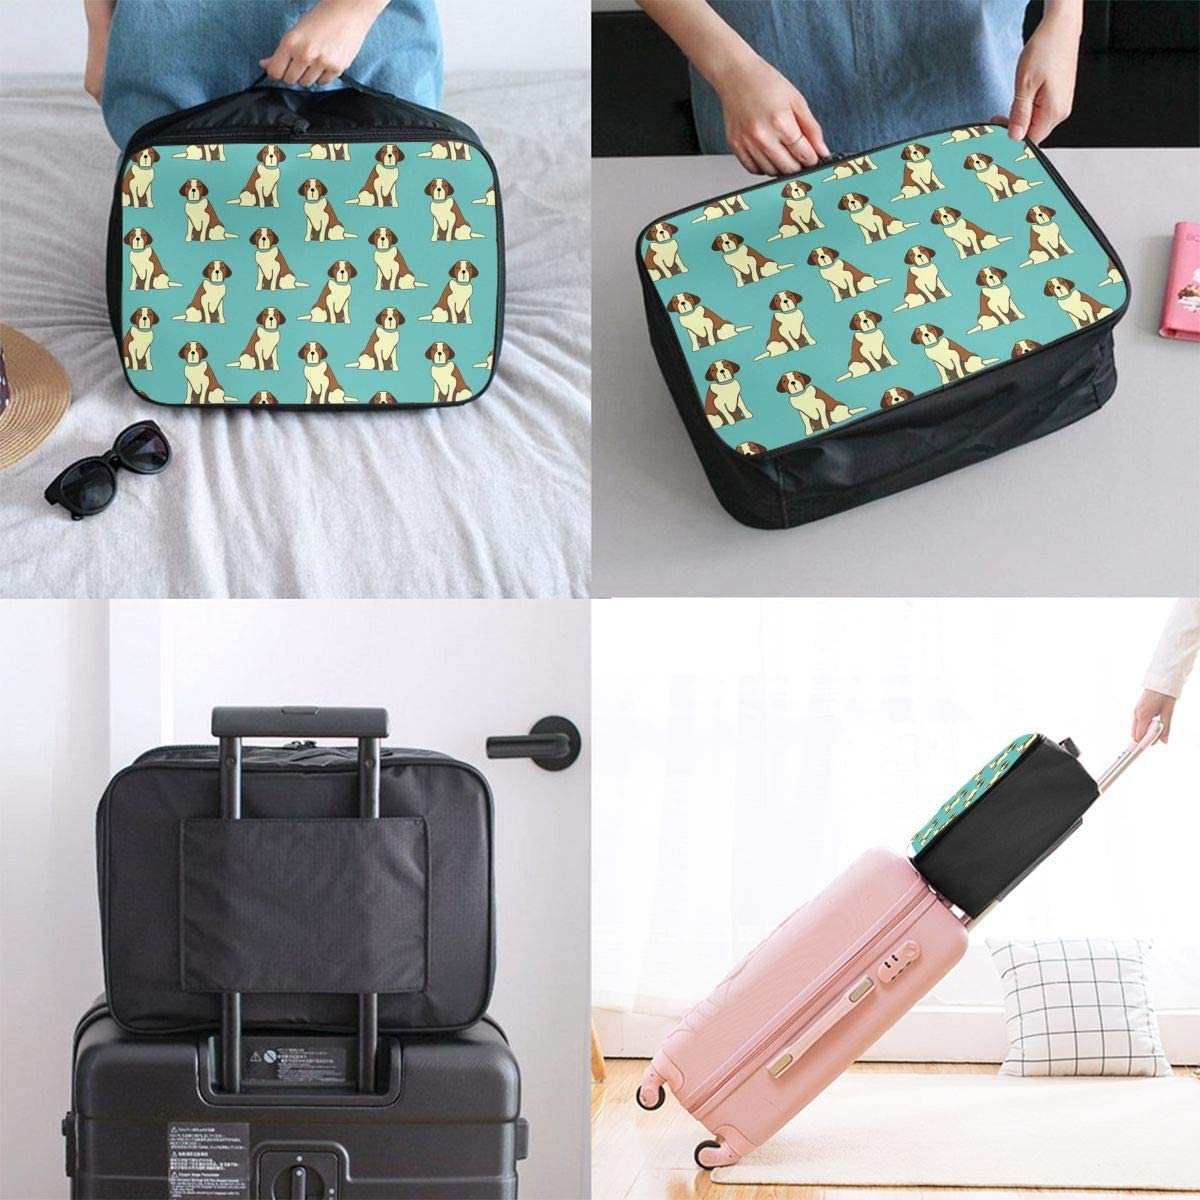 Dog-animal-pattern Travel Carry-on Luggage Weekender Bag Overnight Tote Flight Duffel In Trolley Handle